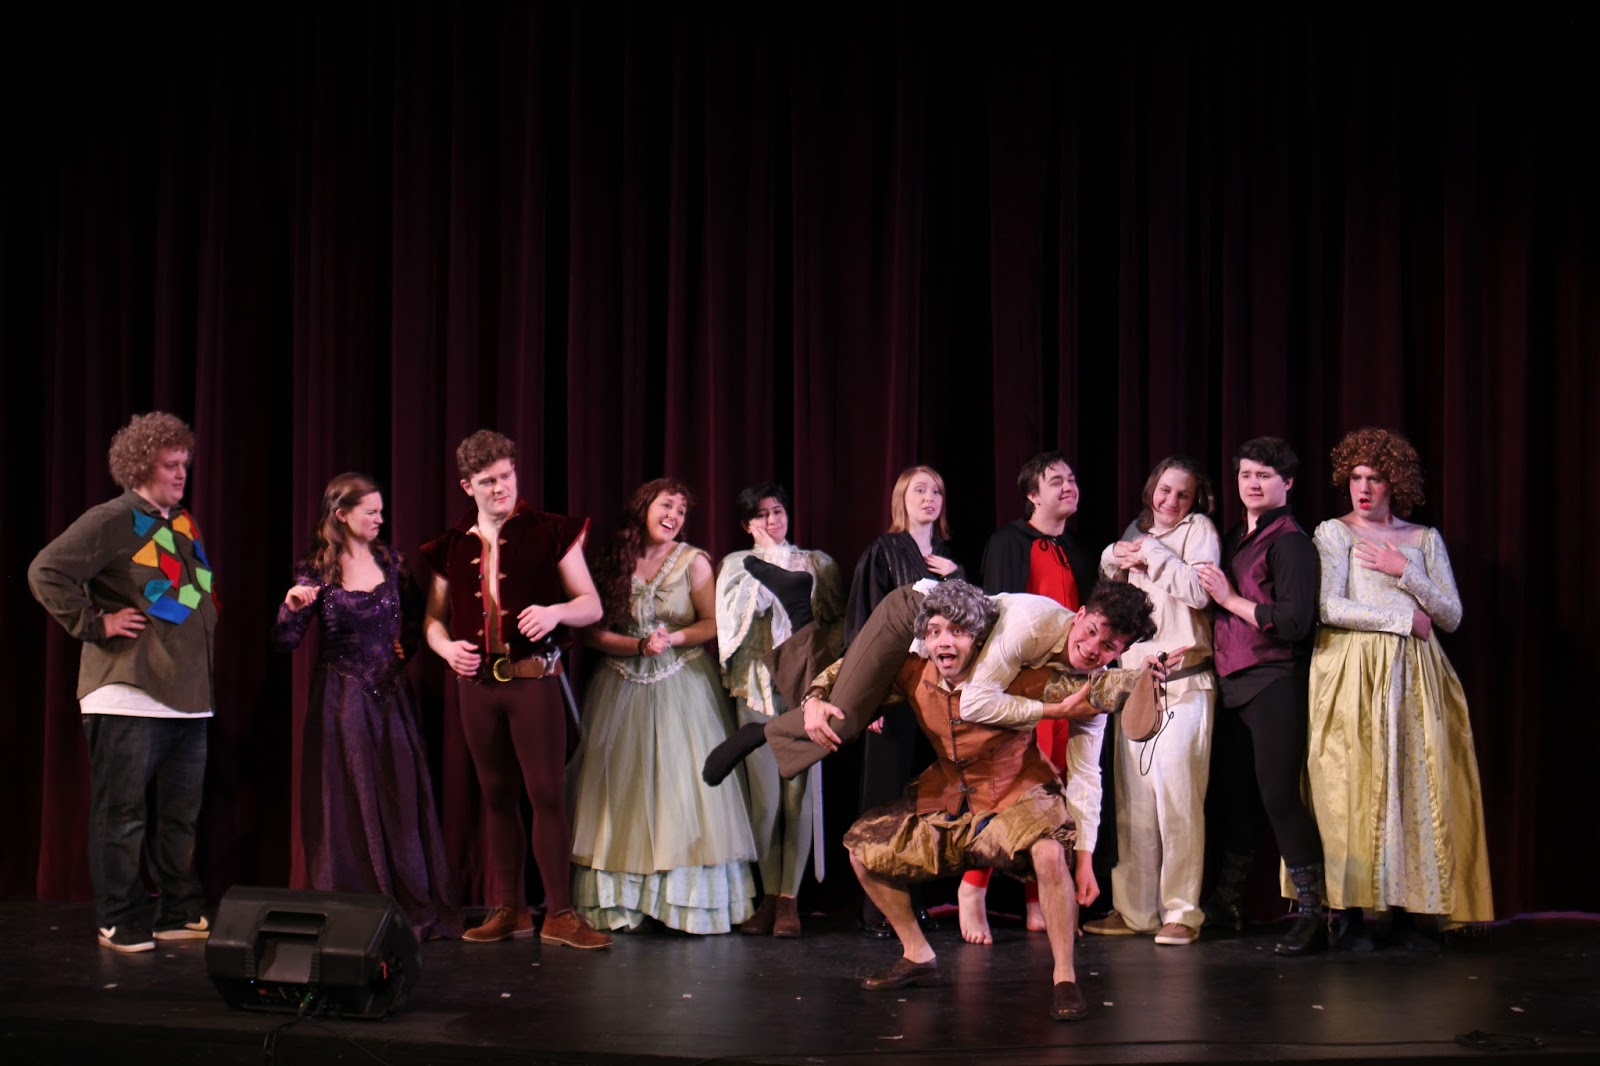 a review of the boston colleges production of servant of two masters a play by carlo goldoni And adapted by joan holden stephen belber carol mulroney john belluso henry flamethrowa a nervous.